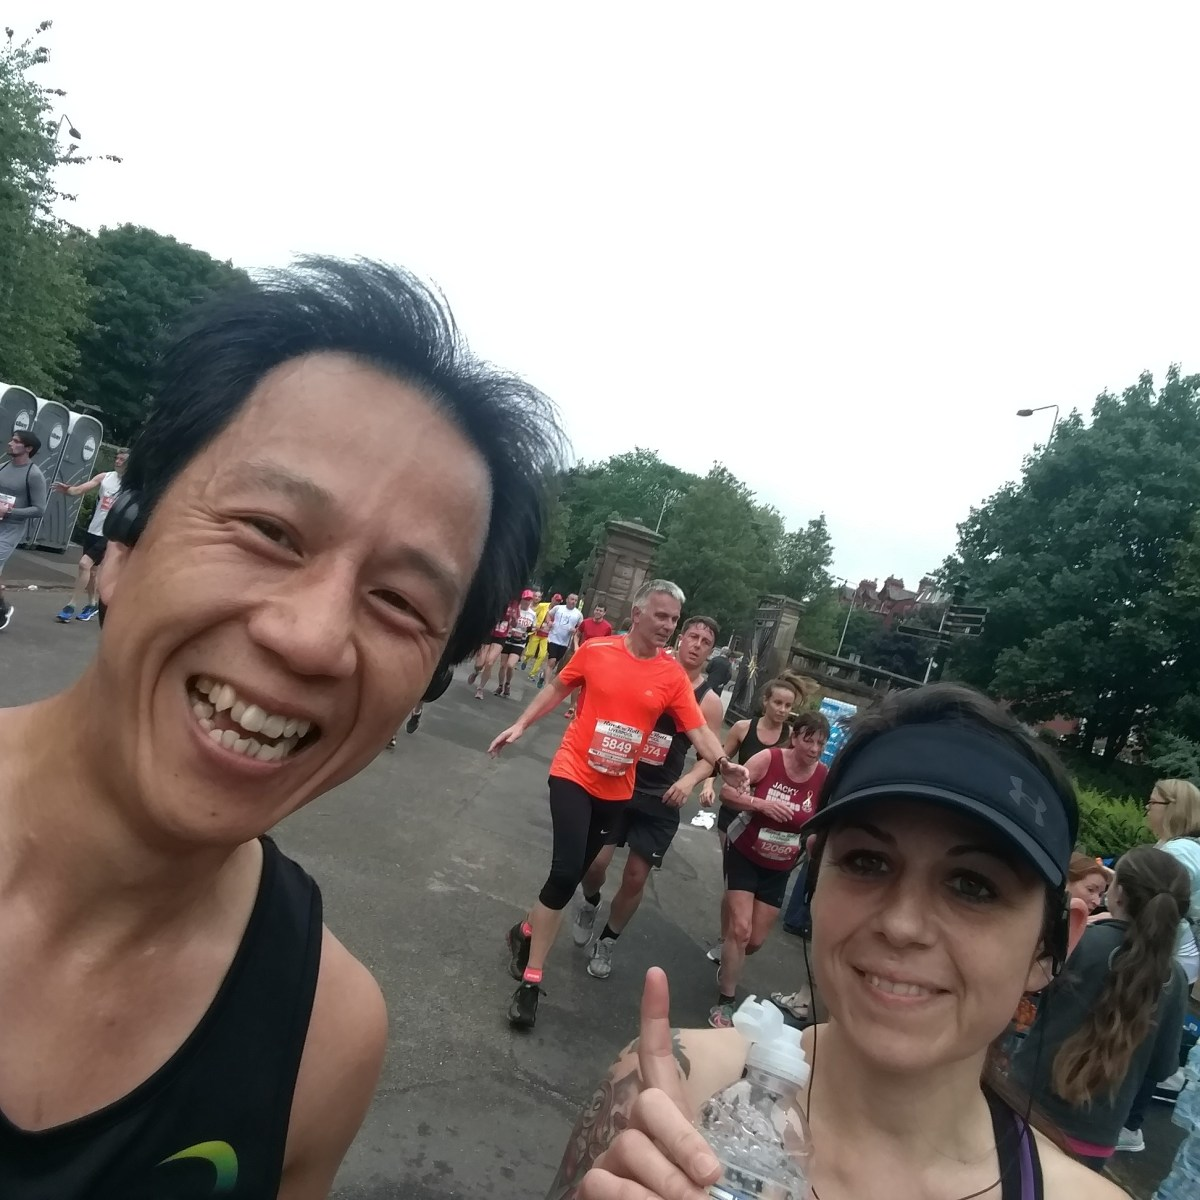 Running selfie with instarammer @running_for_Autism